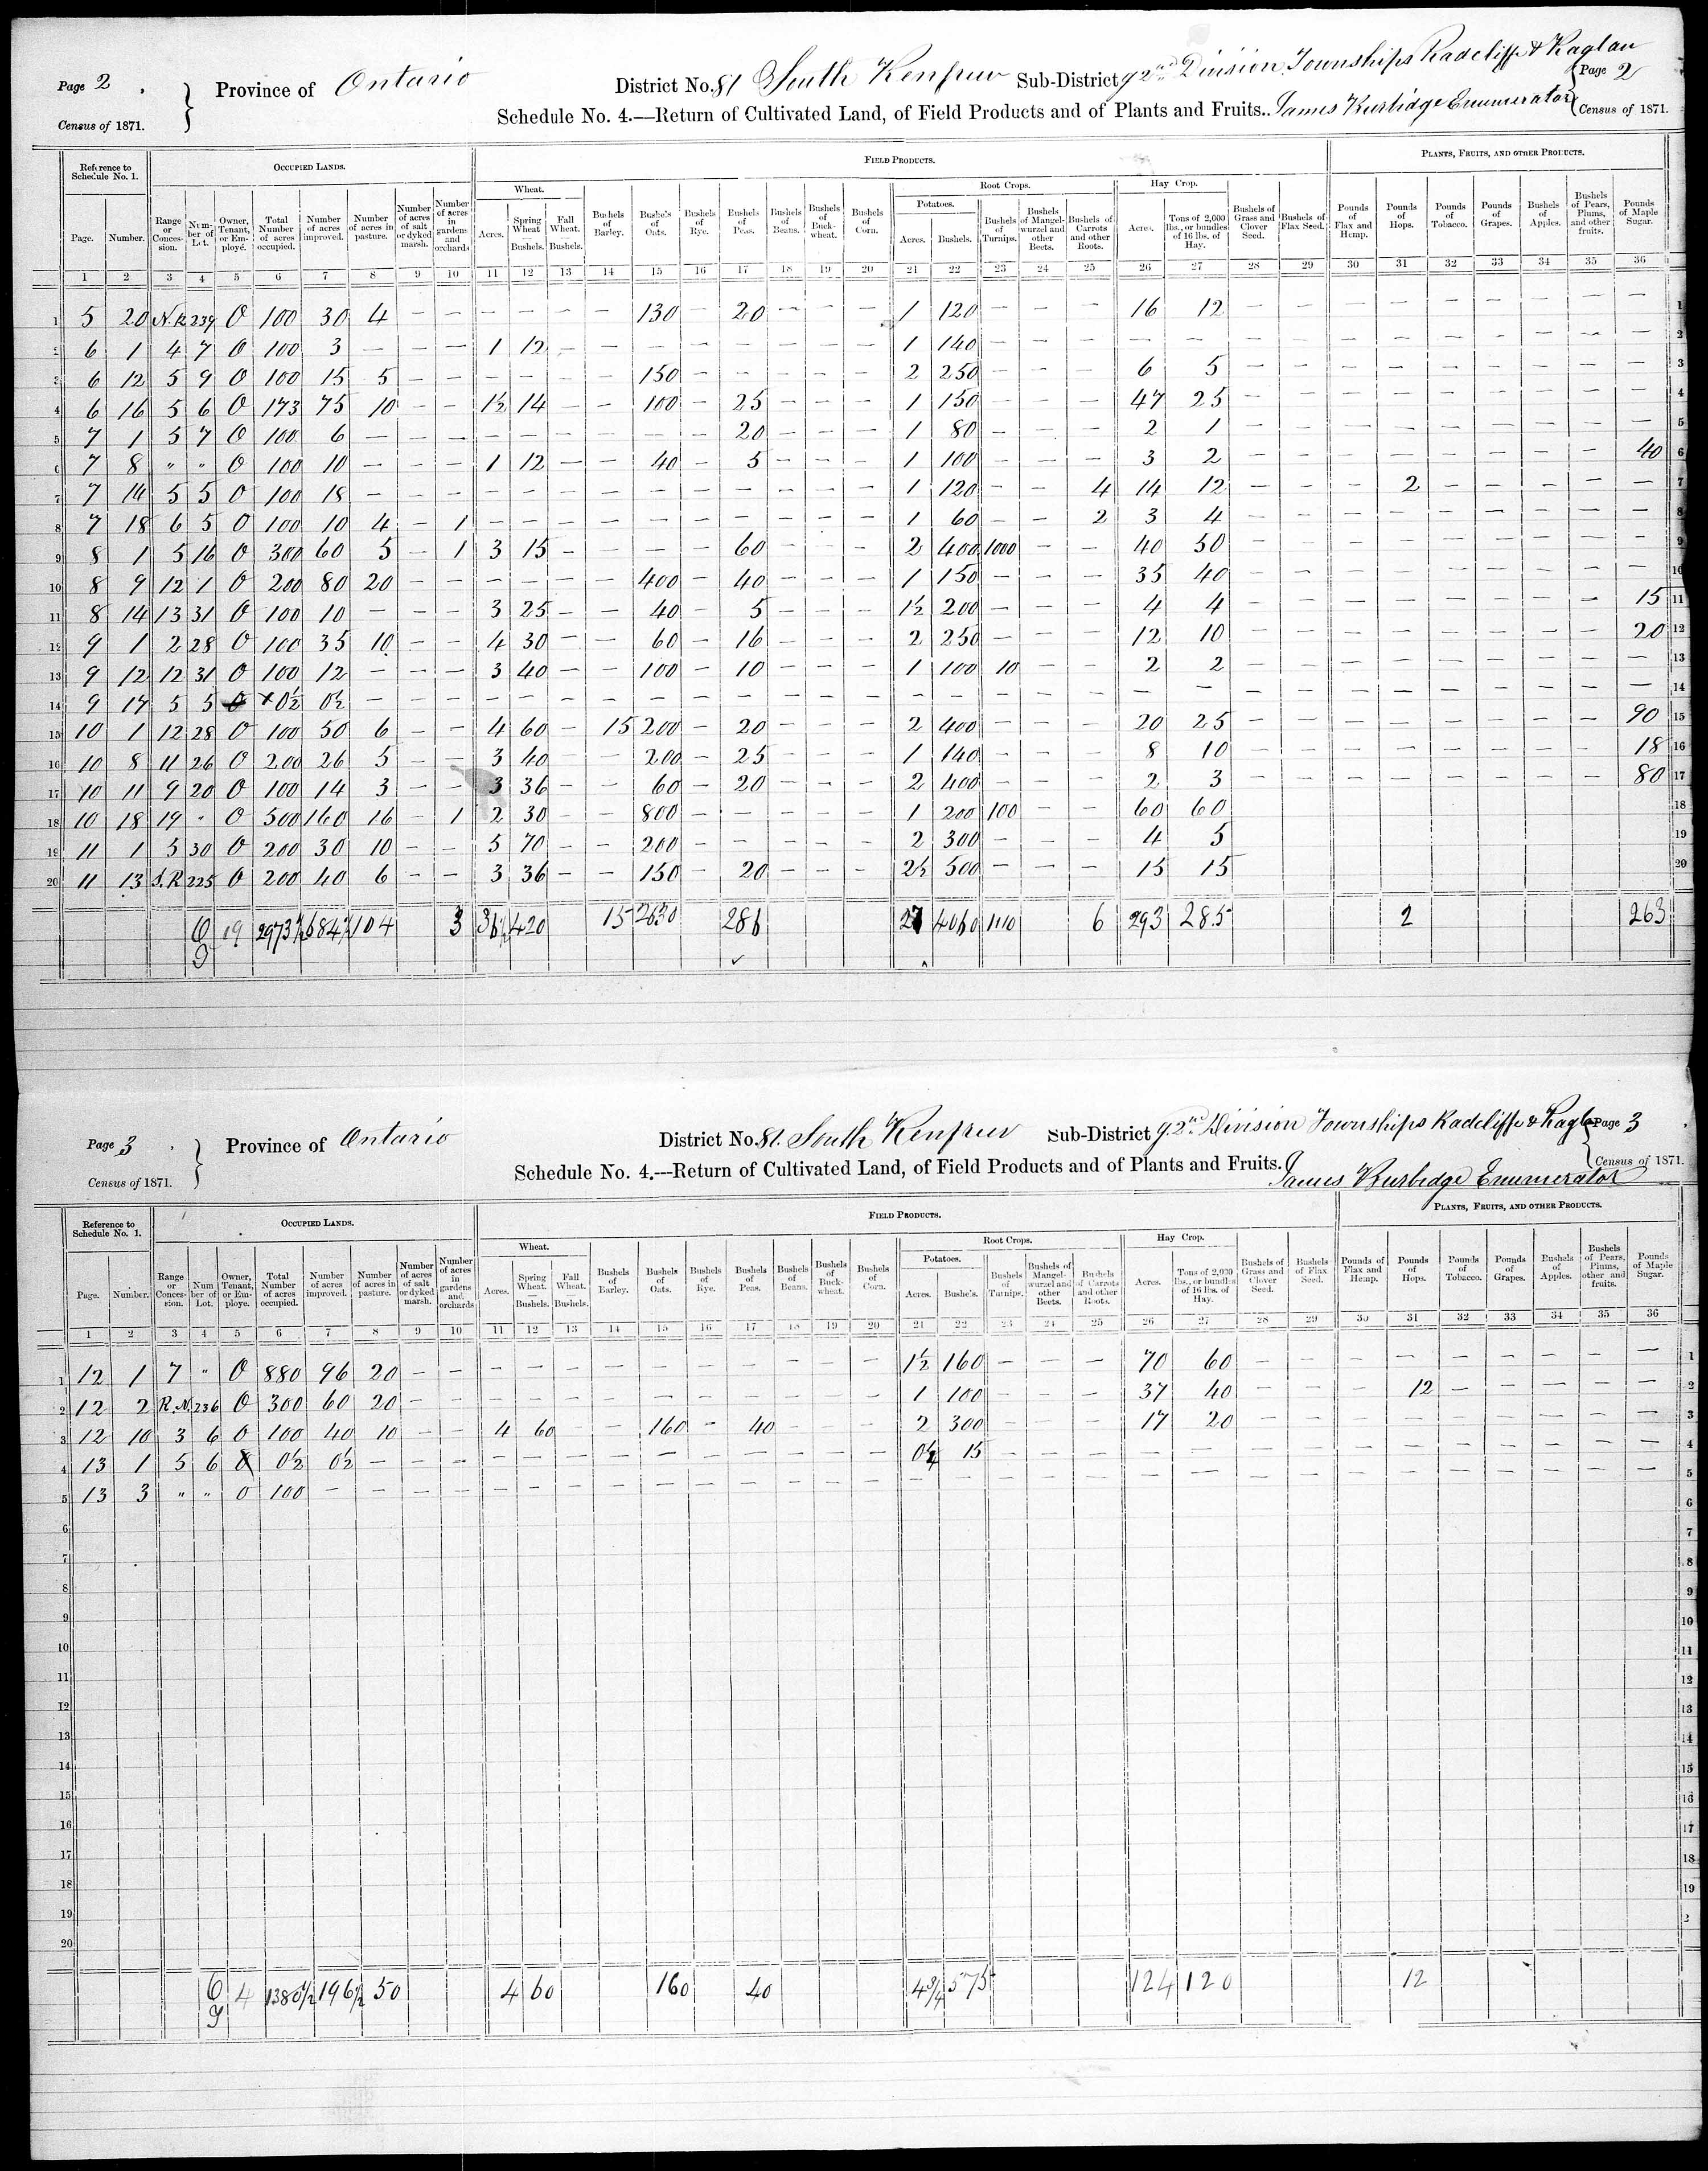 Title: Census of Canada, 1871 - Mikan Number: 142105 - Microform: c-10020